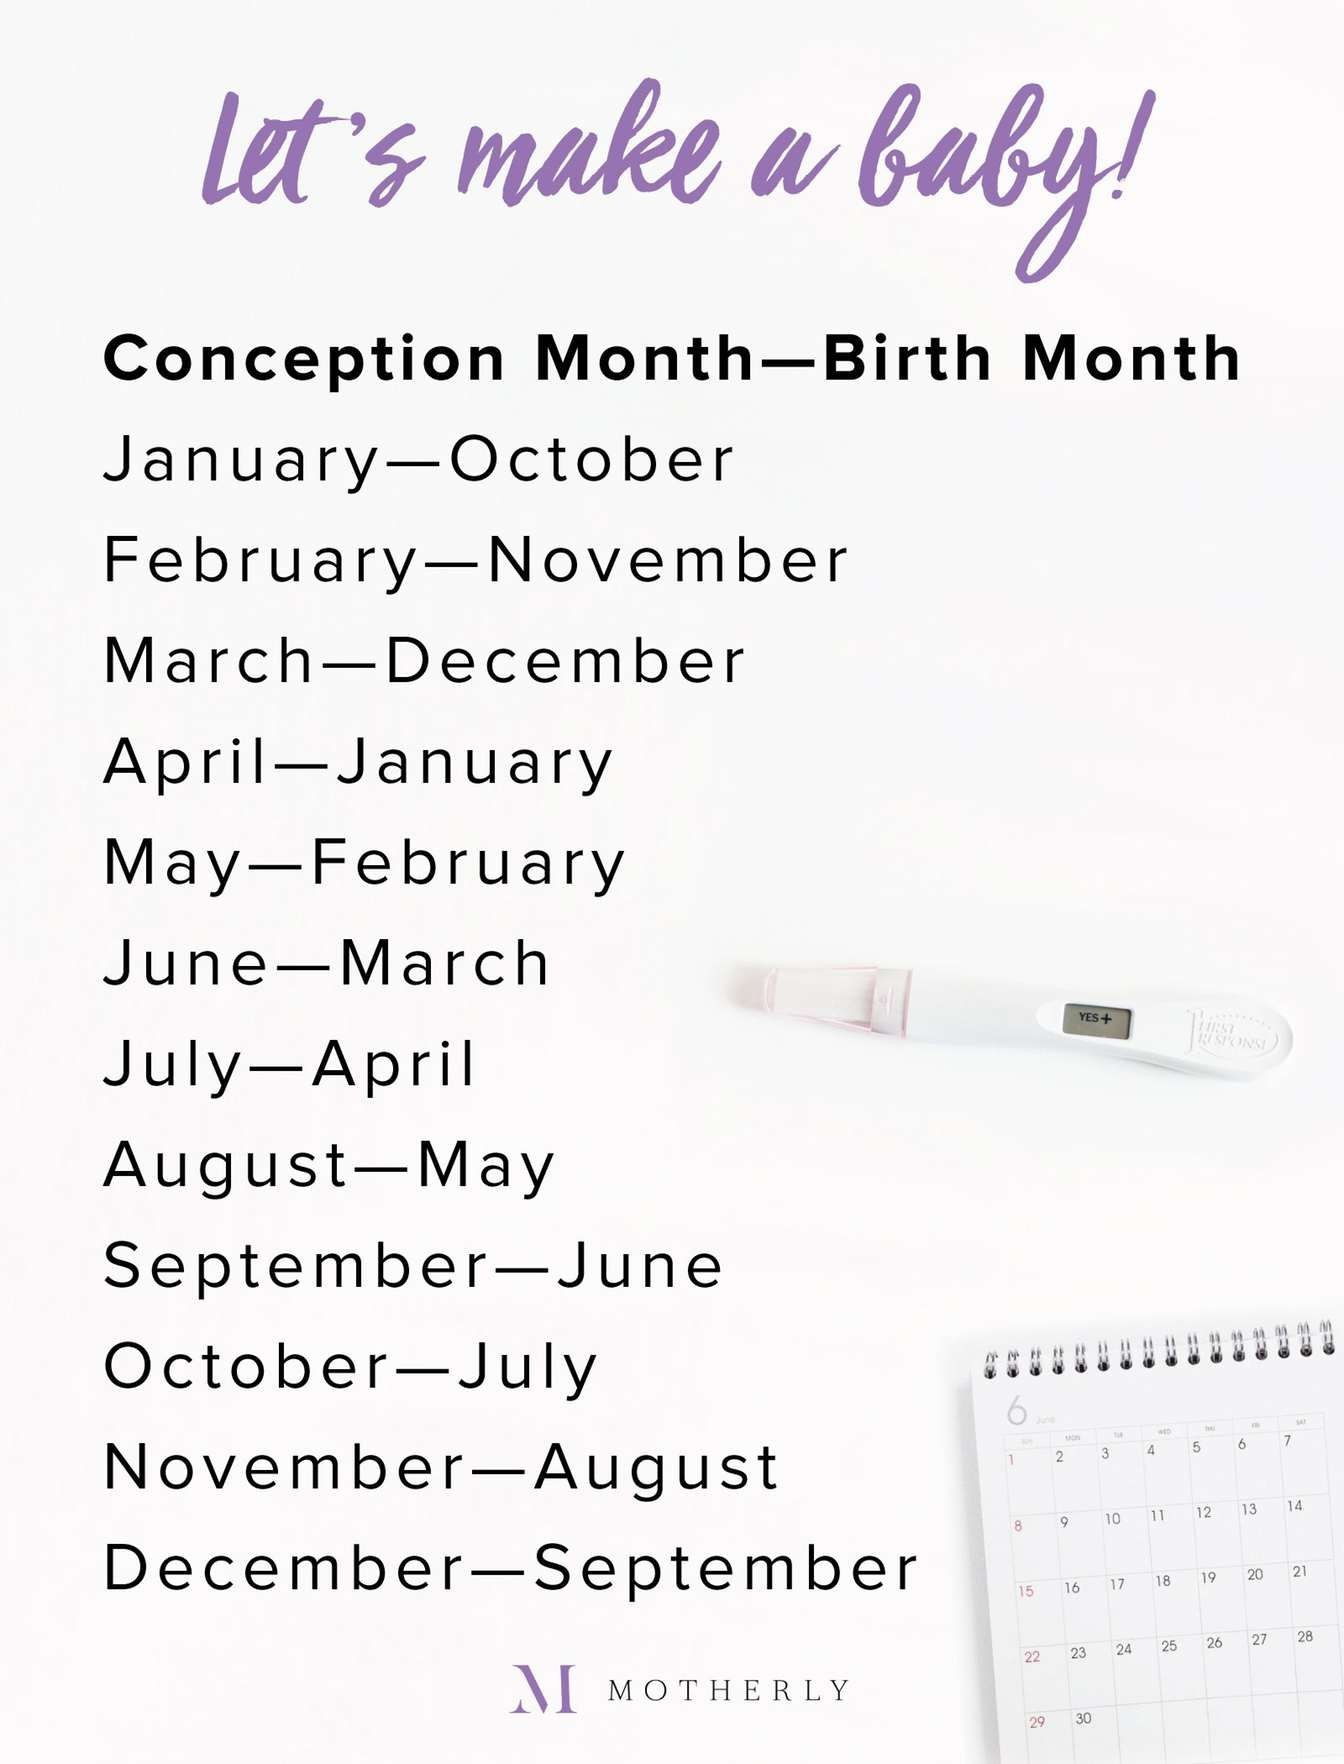 January February March Calendar Más Caliente What Month Will My Baby Be Born Due Date Graphic Calculator Of January February March Calendar Más Reciente Printable Calendar January February March 2019